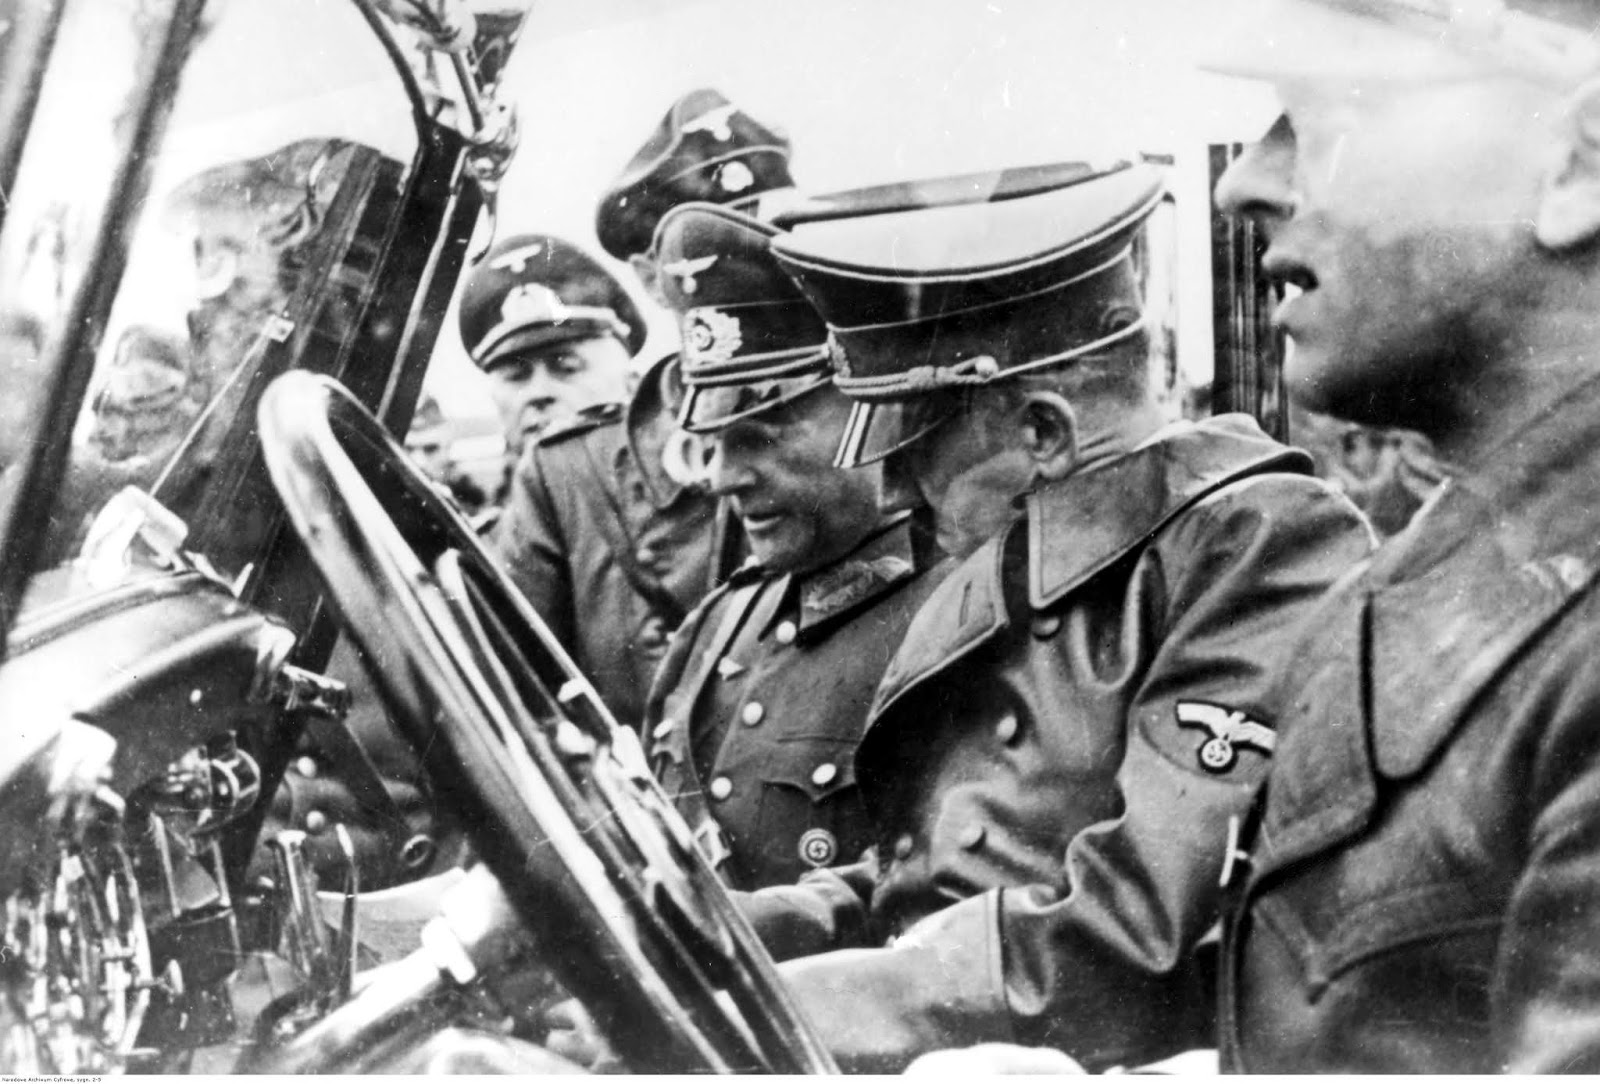 Adolf Hitler during a visit to Kriegsmarine base in Wilhelmshaven with Walther von Brauchitsch and his chauffeur Erich Kempka